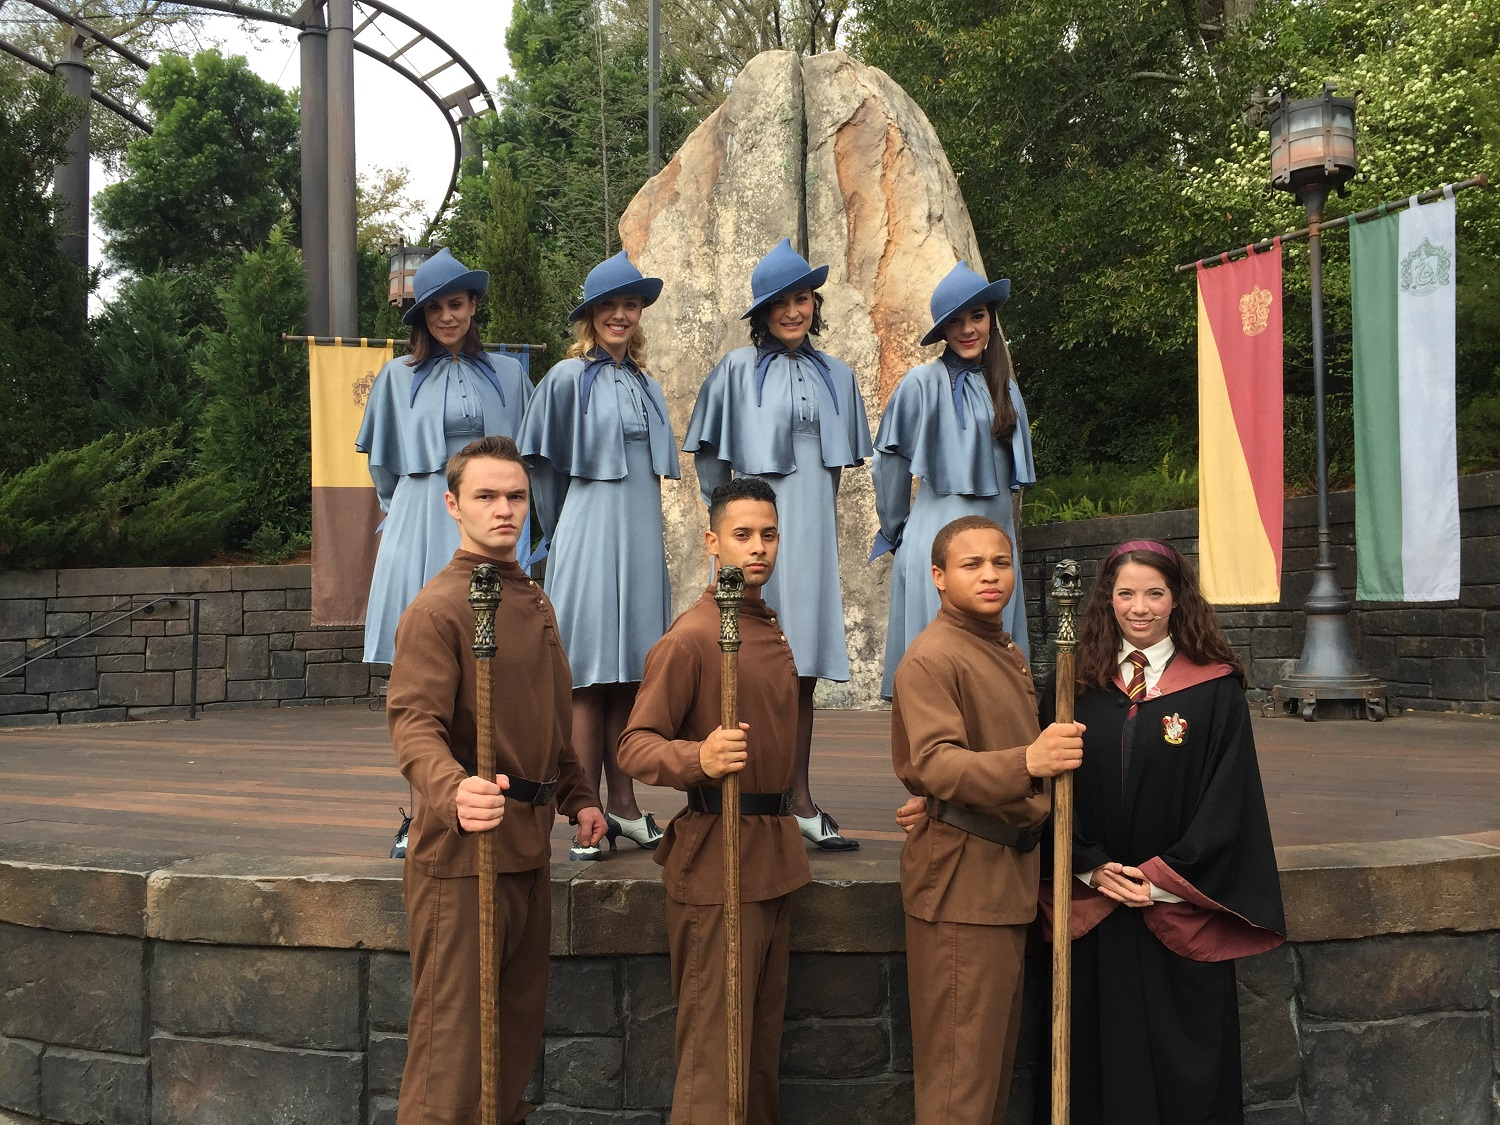 Triwizard Spirit Rally characters in The Wizarding World of Harry Potter - Hogsmeade in Islands of Adventure.